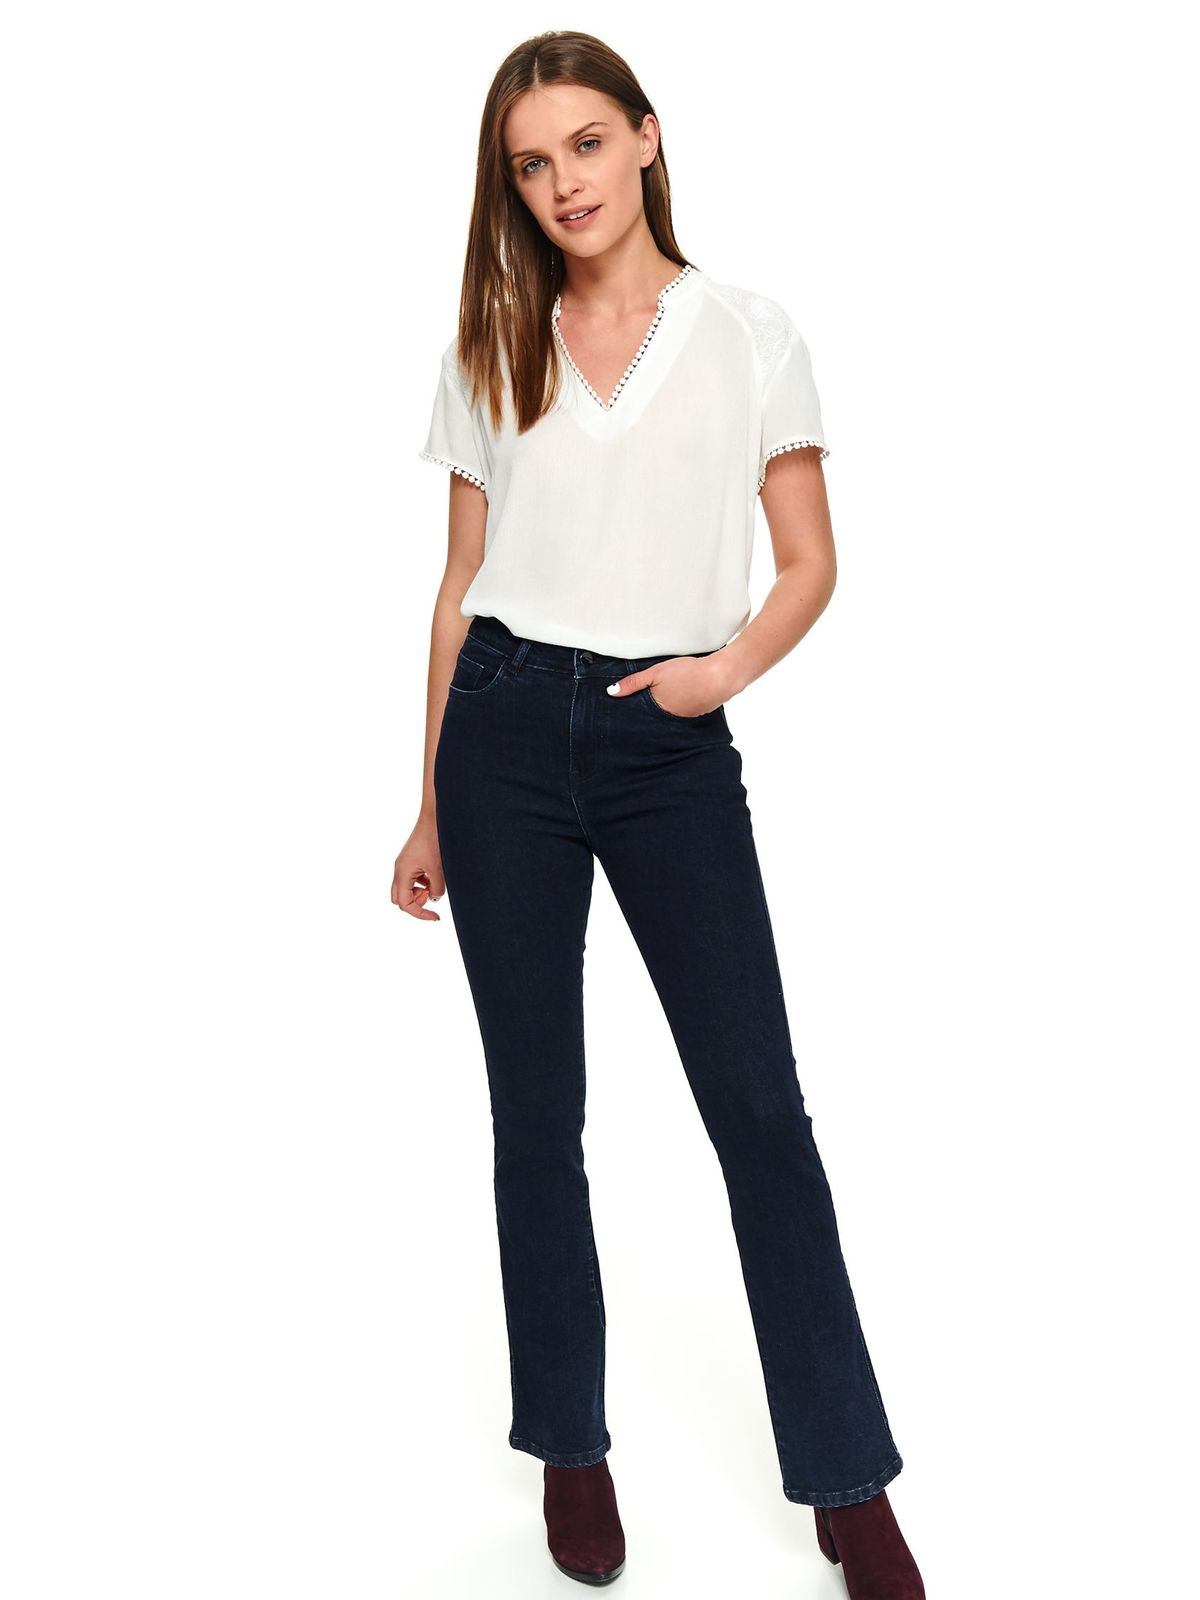 Darkblue trousers casual flared denim with front and back pockets long